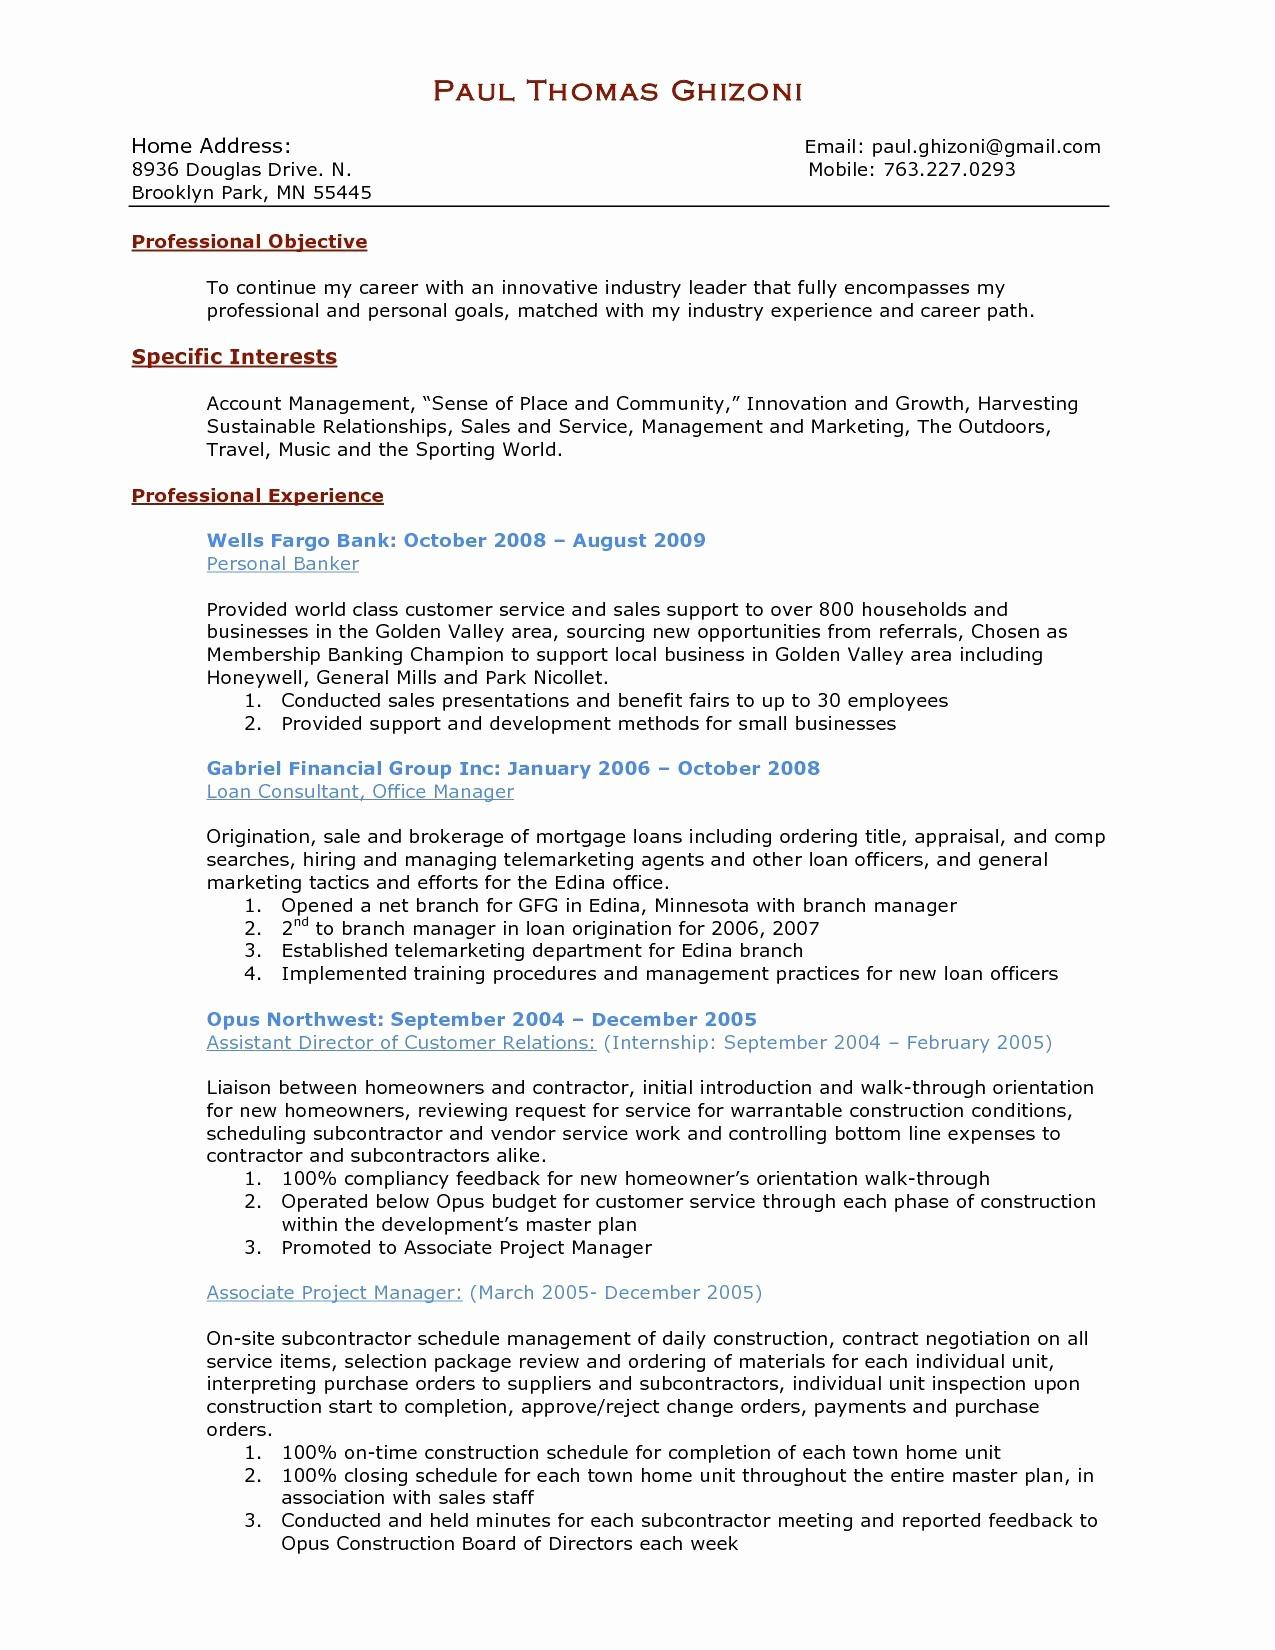 Product Manager Resume Sample - Project Manager Resume Sample Luxury Product Manager Resume Template